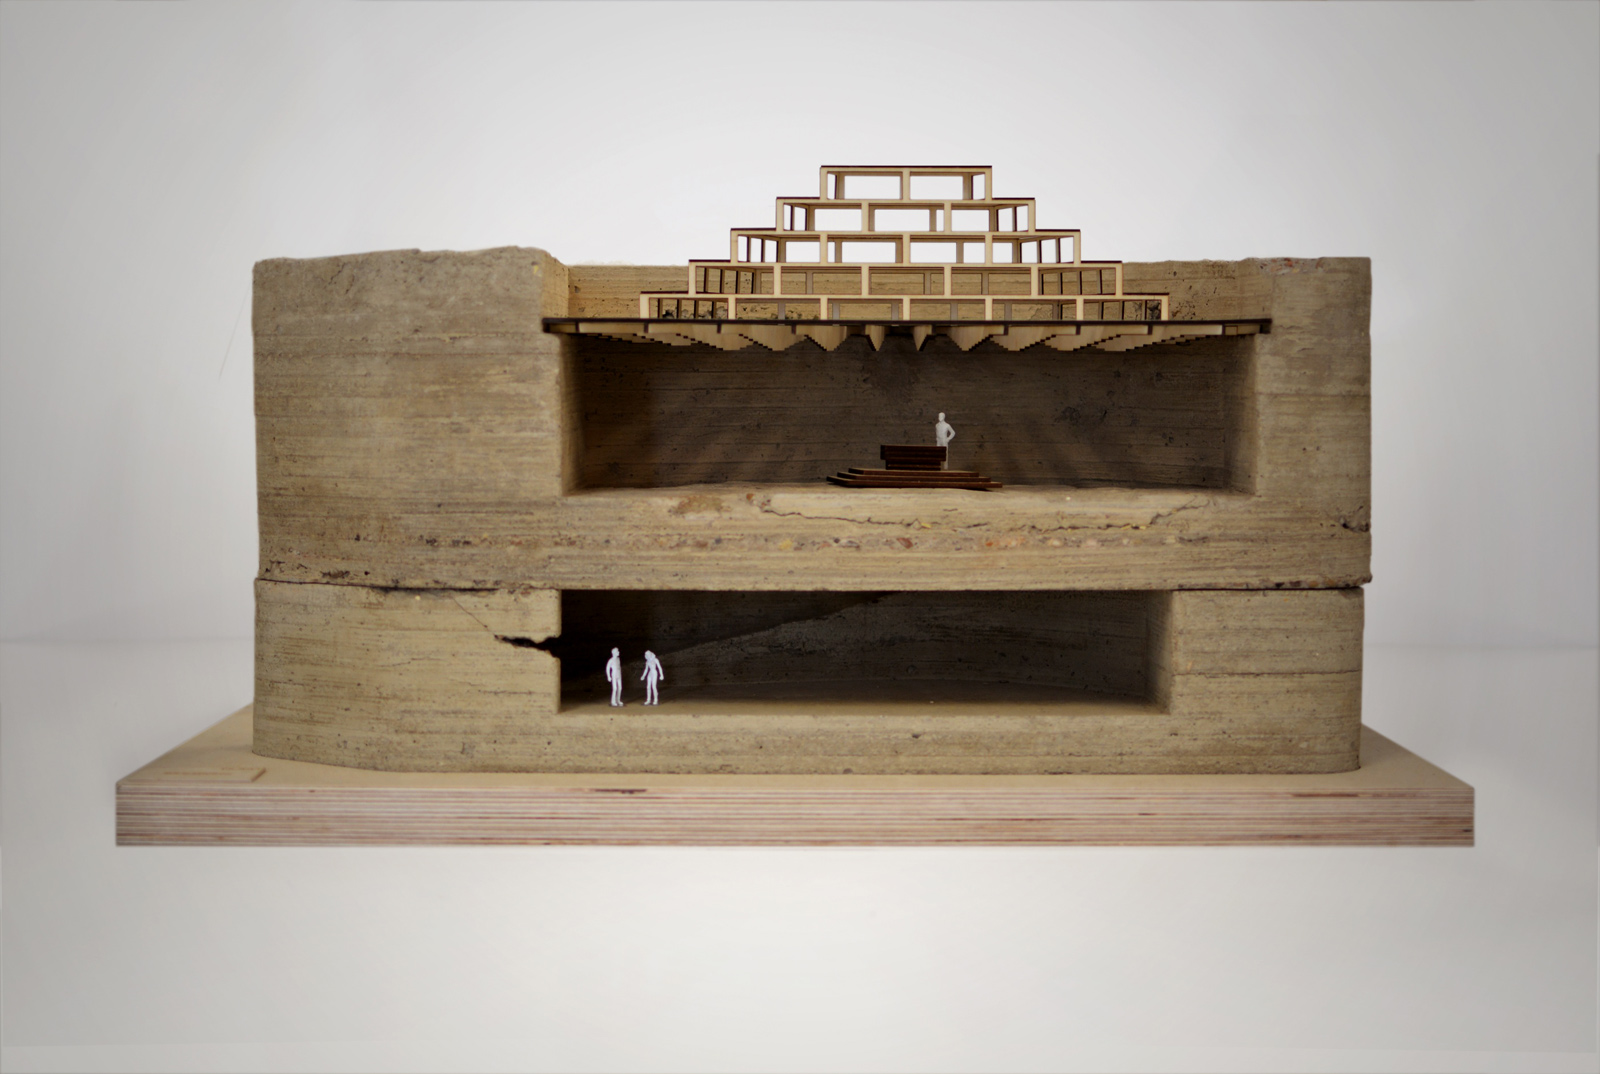 Model of St Peter's seminary by NORD Architecture, courtesy of NVA